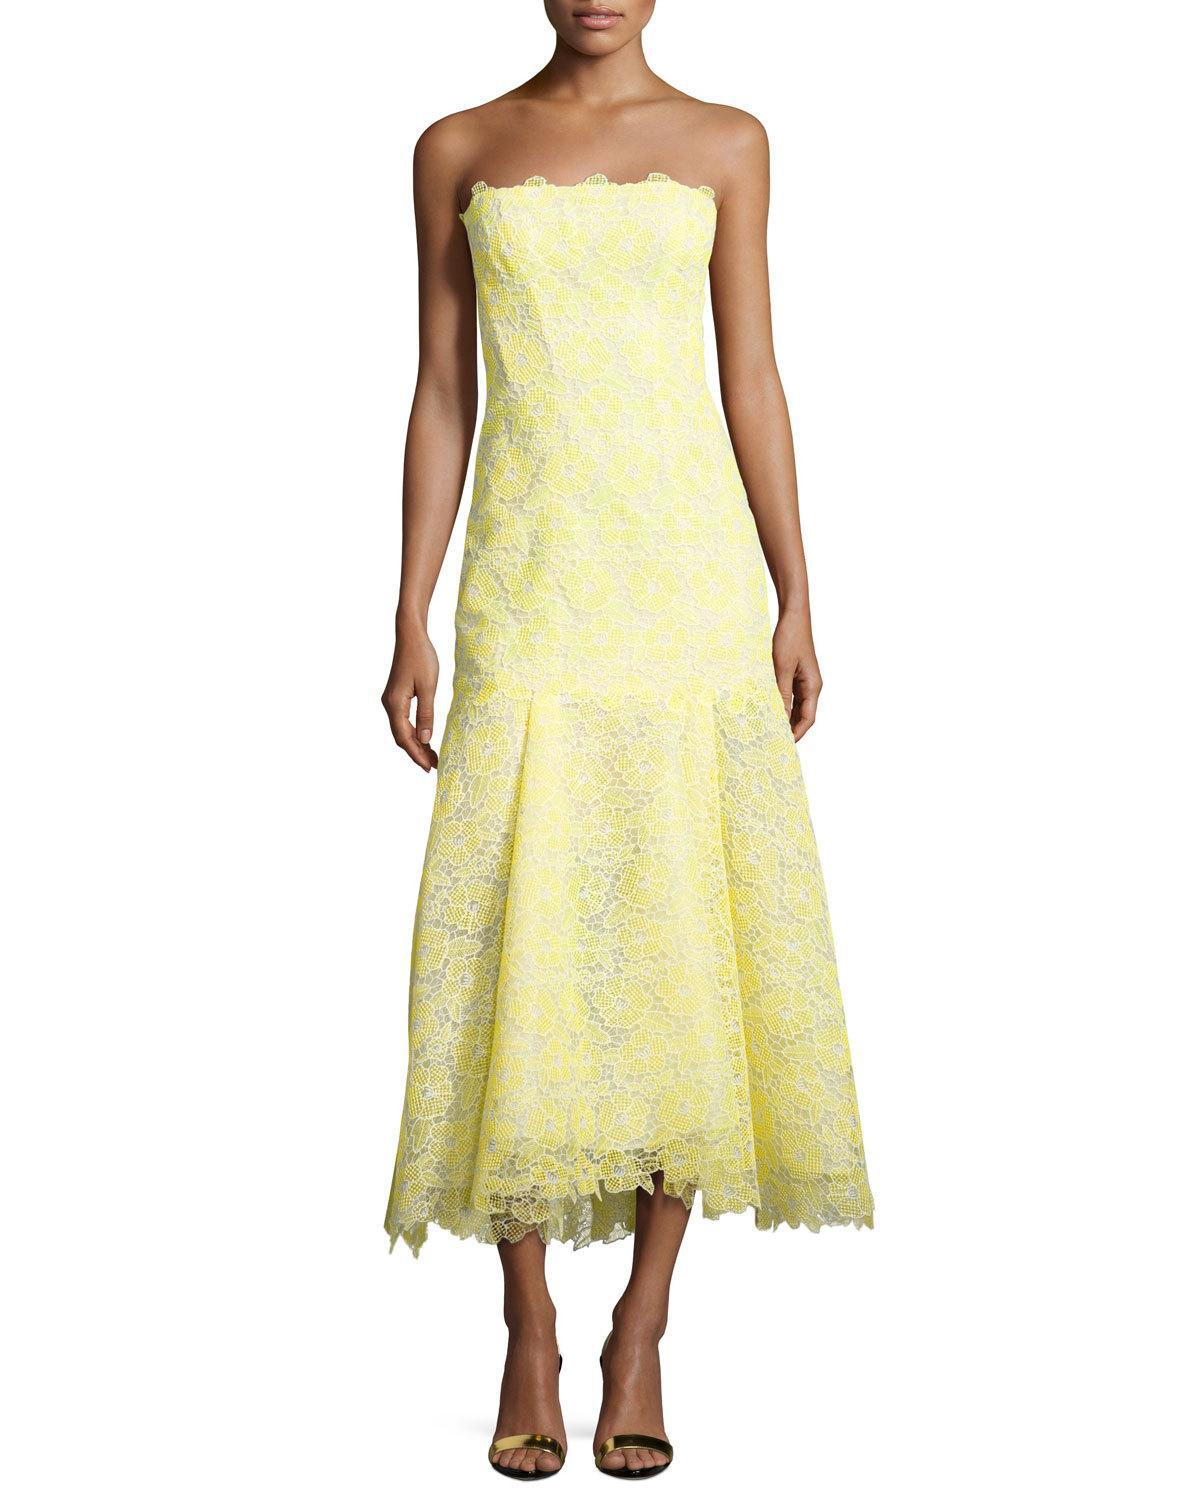 673ad1320b43 Monique Lhuillier Strapless Lace Trumpet Cocktail Dress in Yellow - Lyst